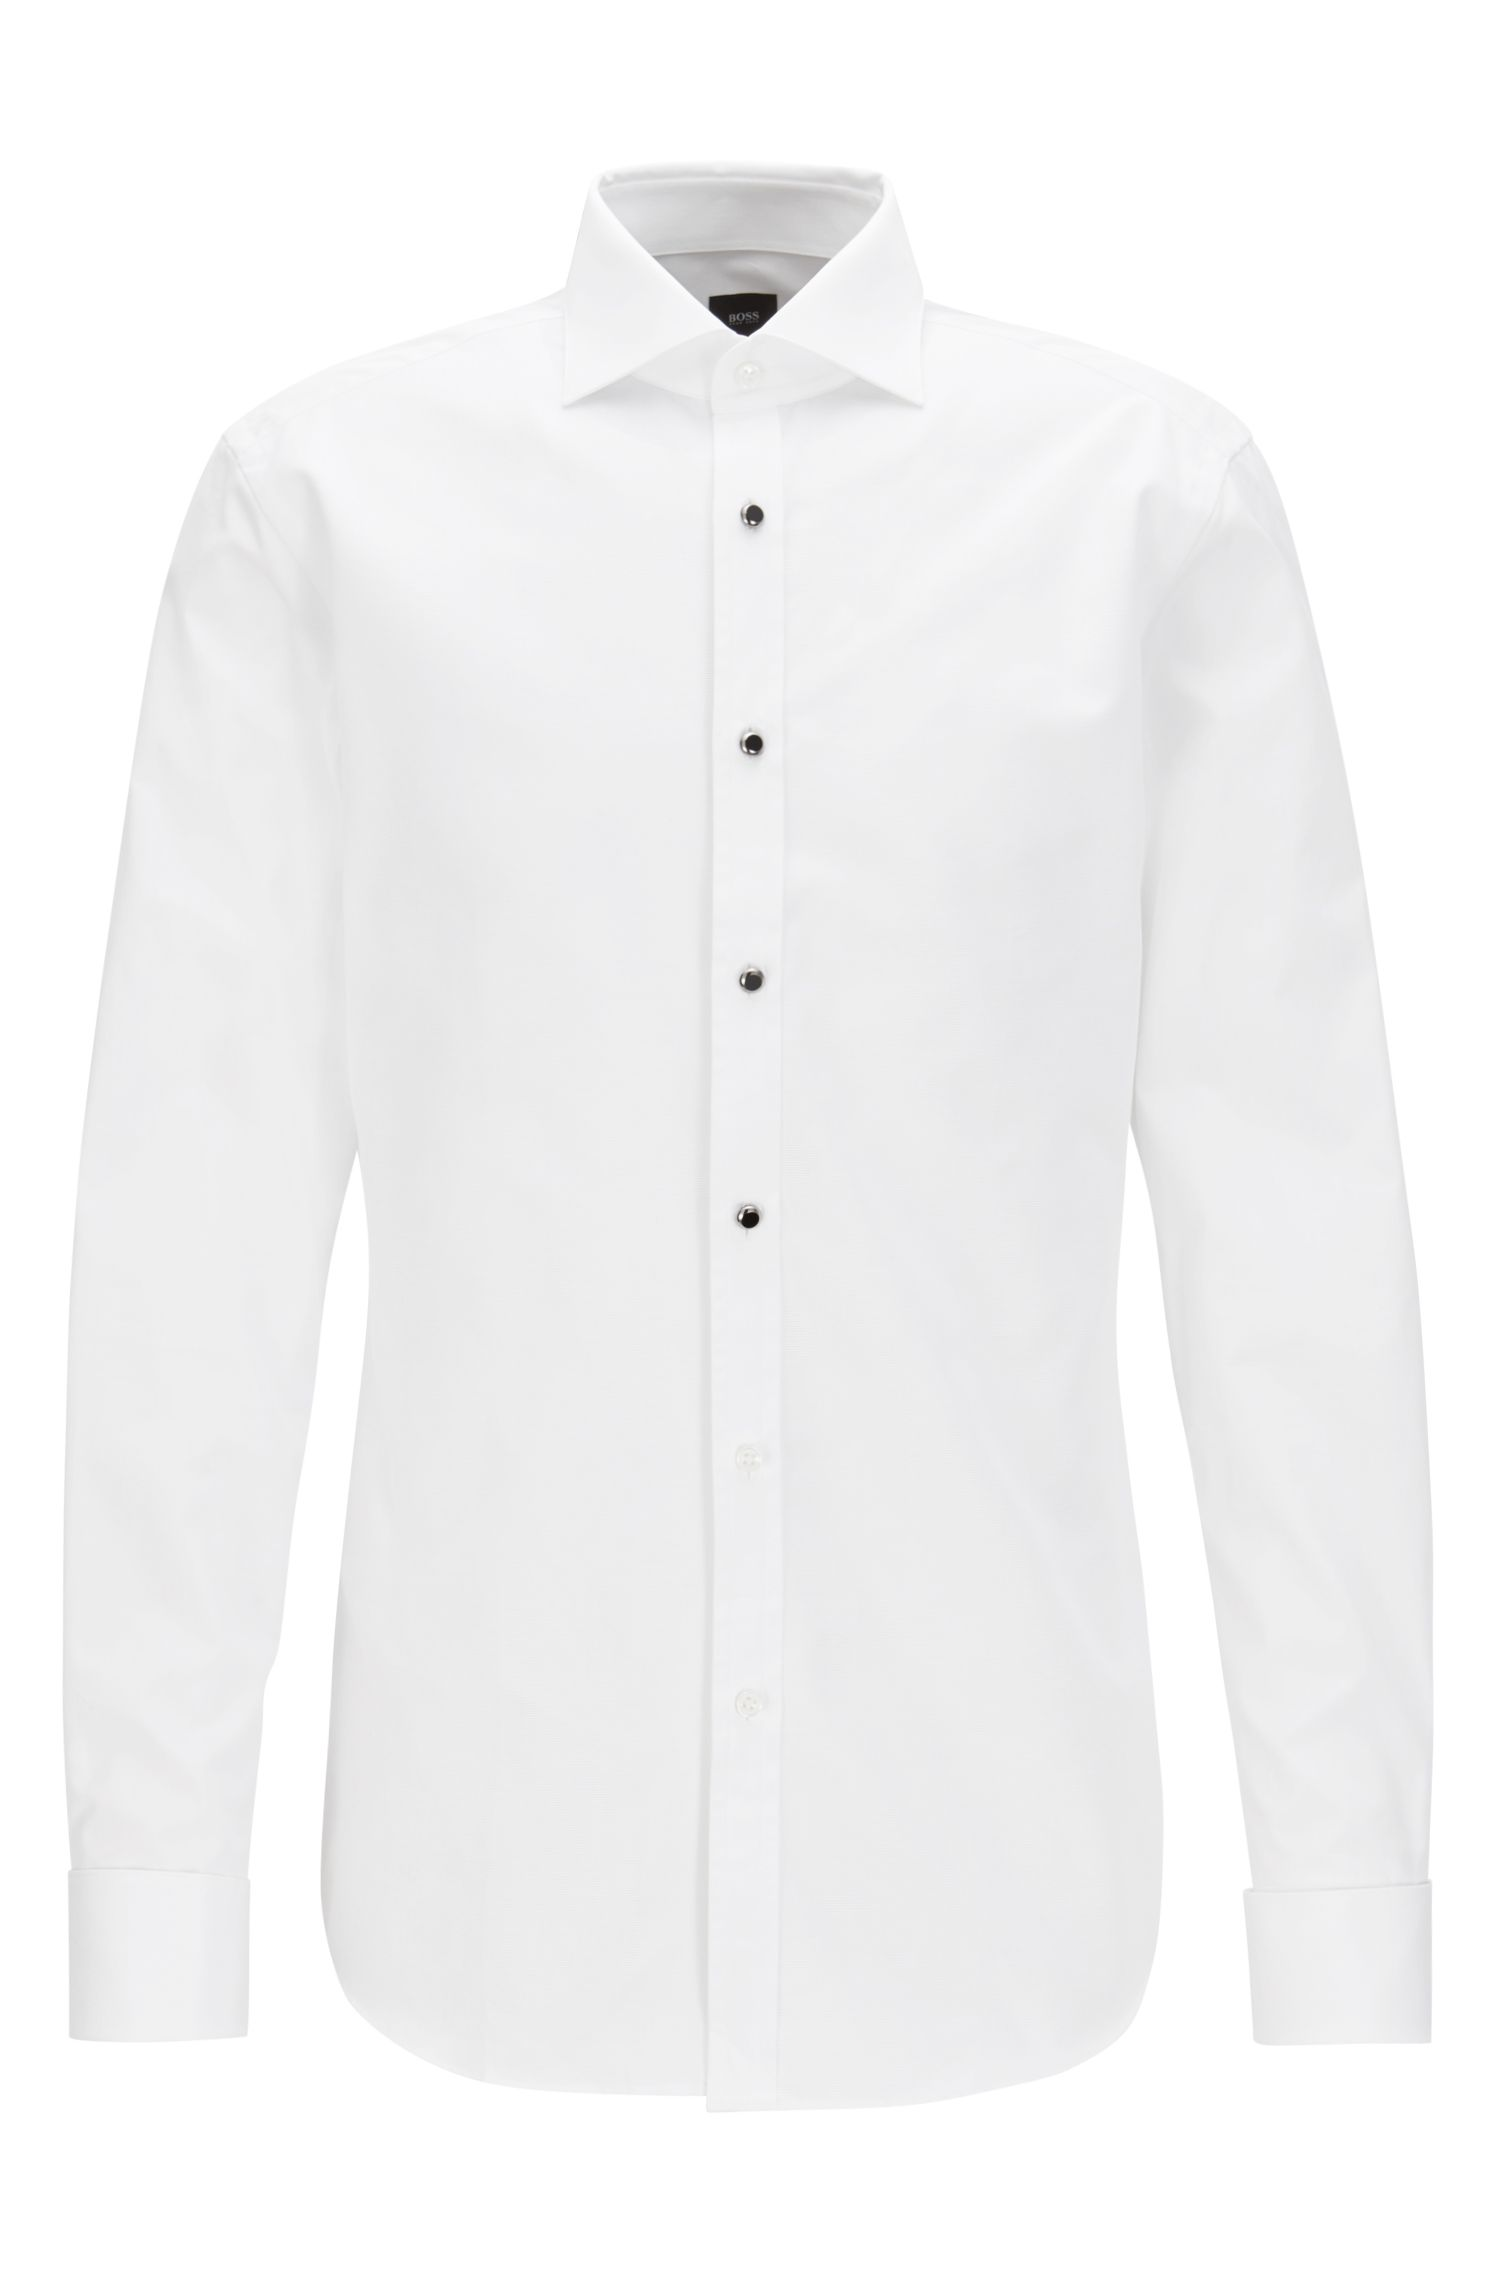 Cotton Dress Shirt, Slim Fit | T-Clayton